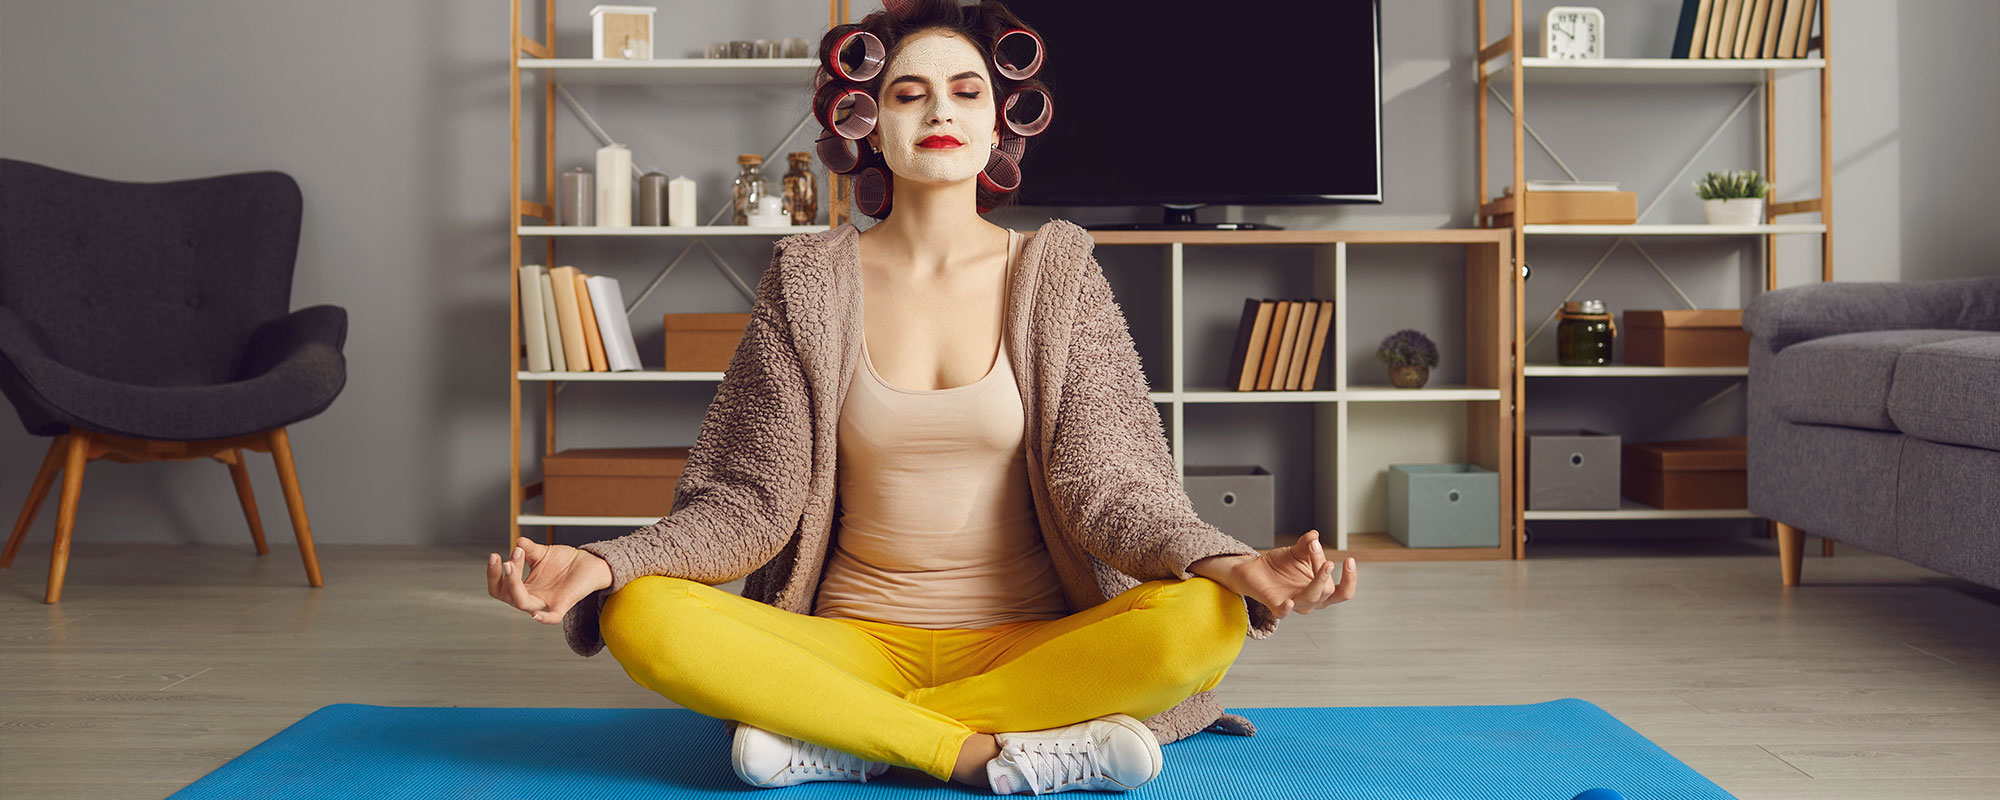 A woman meditating in her living room